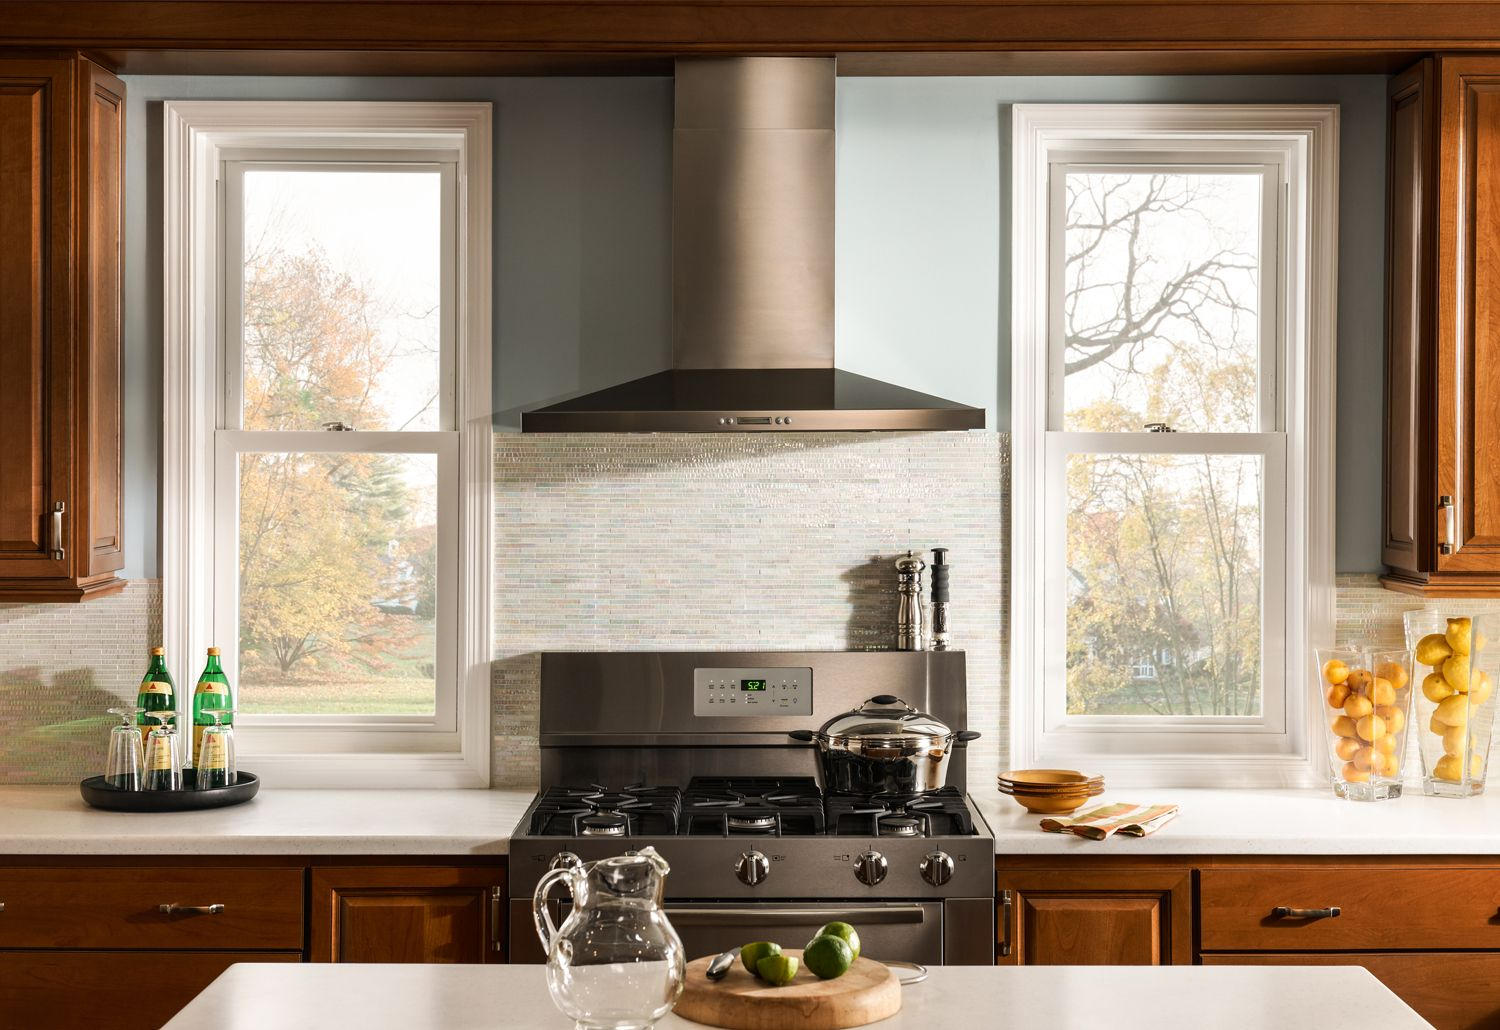 This Sleek Kitchen Looks So Bright And Inviting The Double Hung